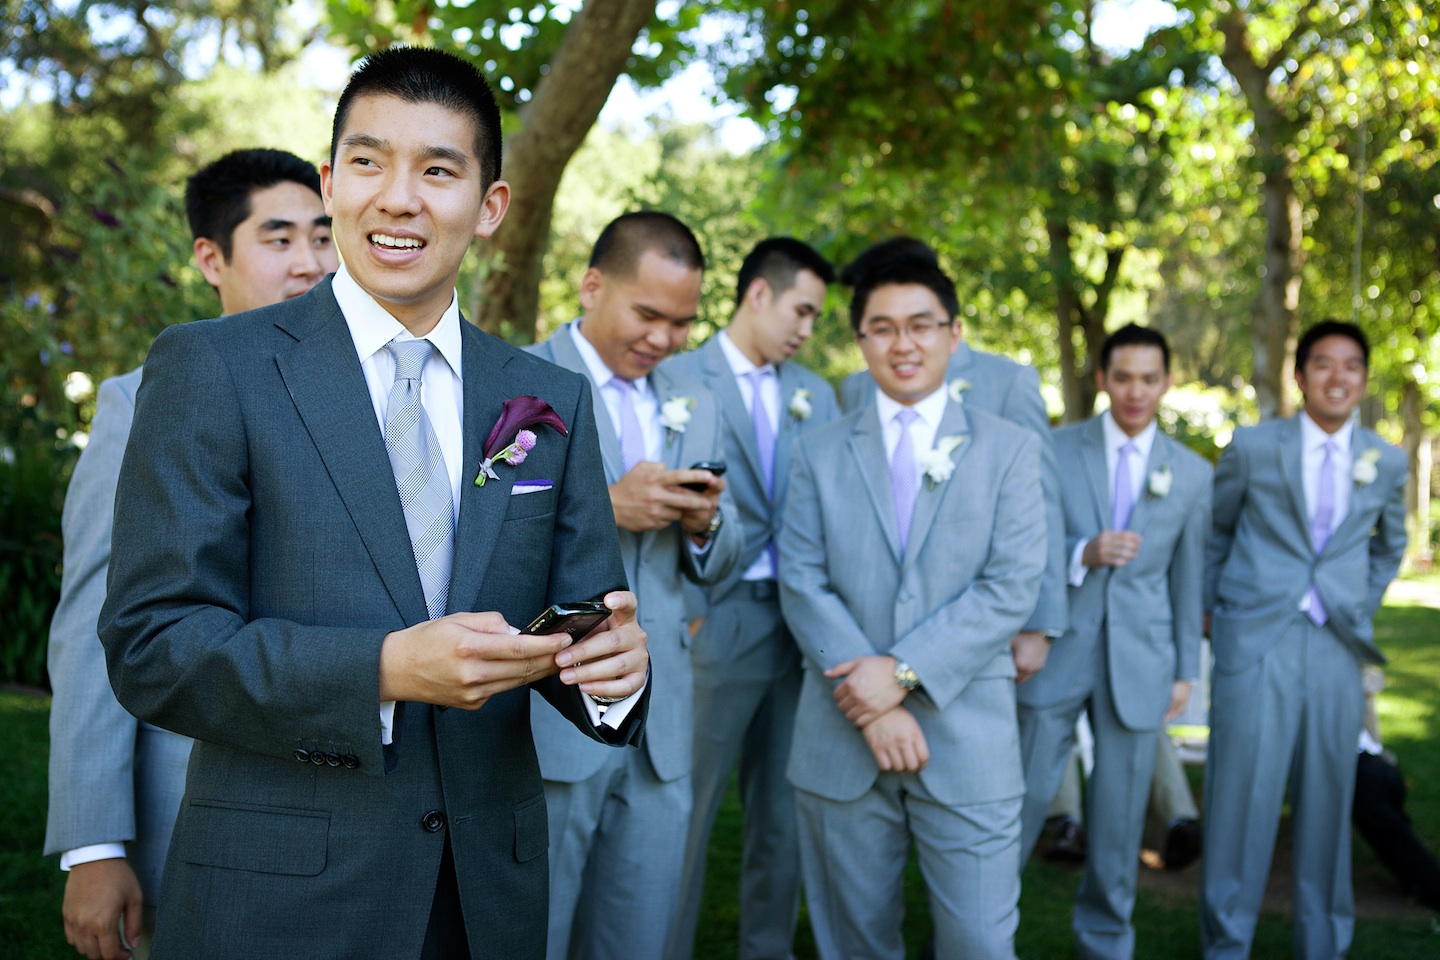 Groom & Groomsmen attire — The Knot